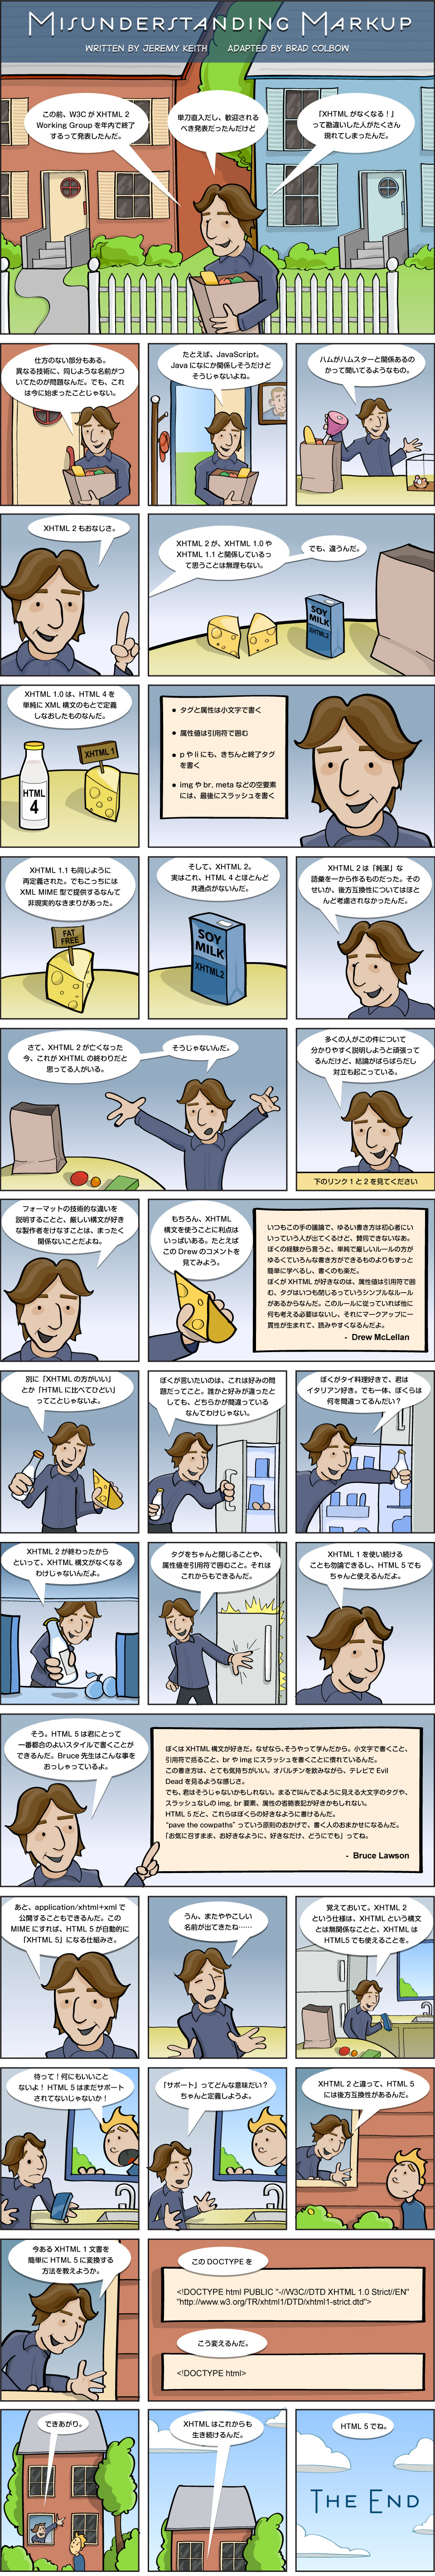 http://standards.mitsue.co.jp/resources/mm_comic/comic.jpg